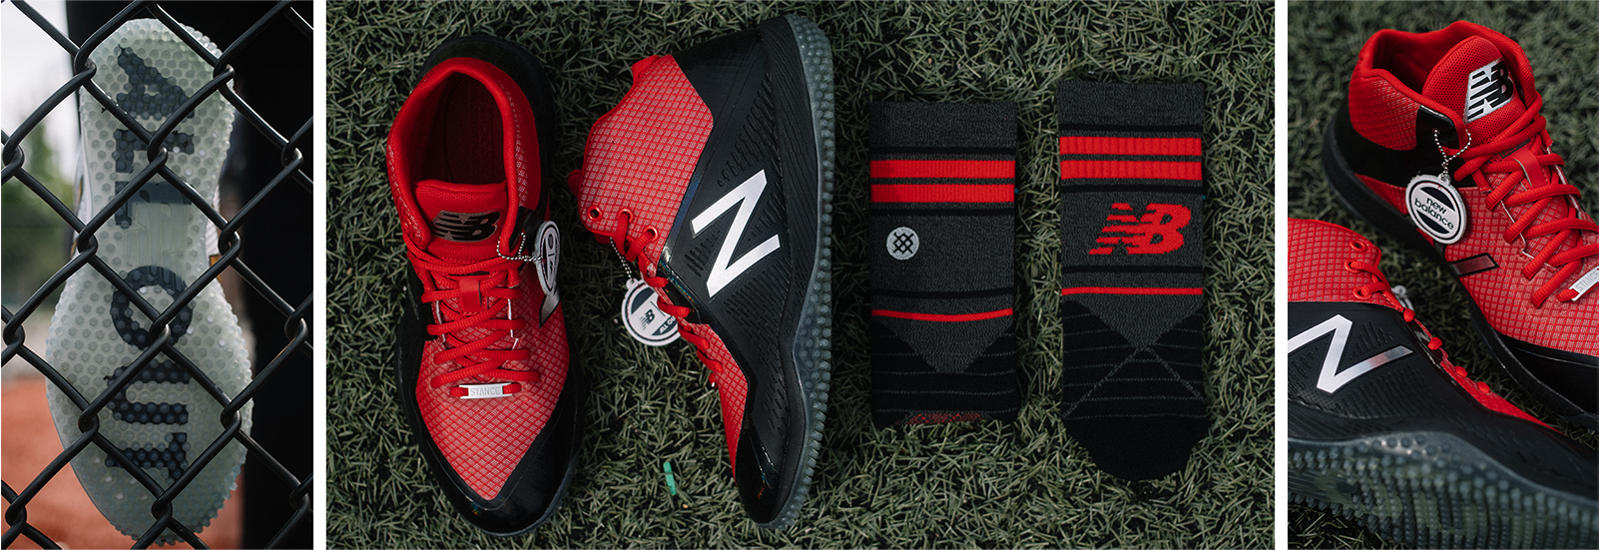 New Balance New Balance x Stance Turf 4040v4, Black with Red